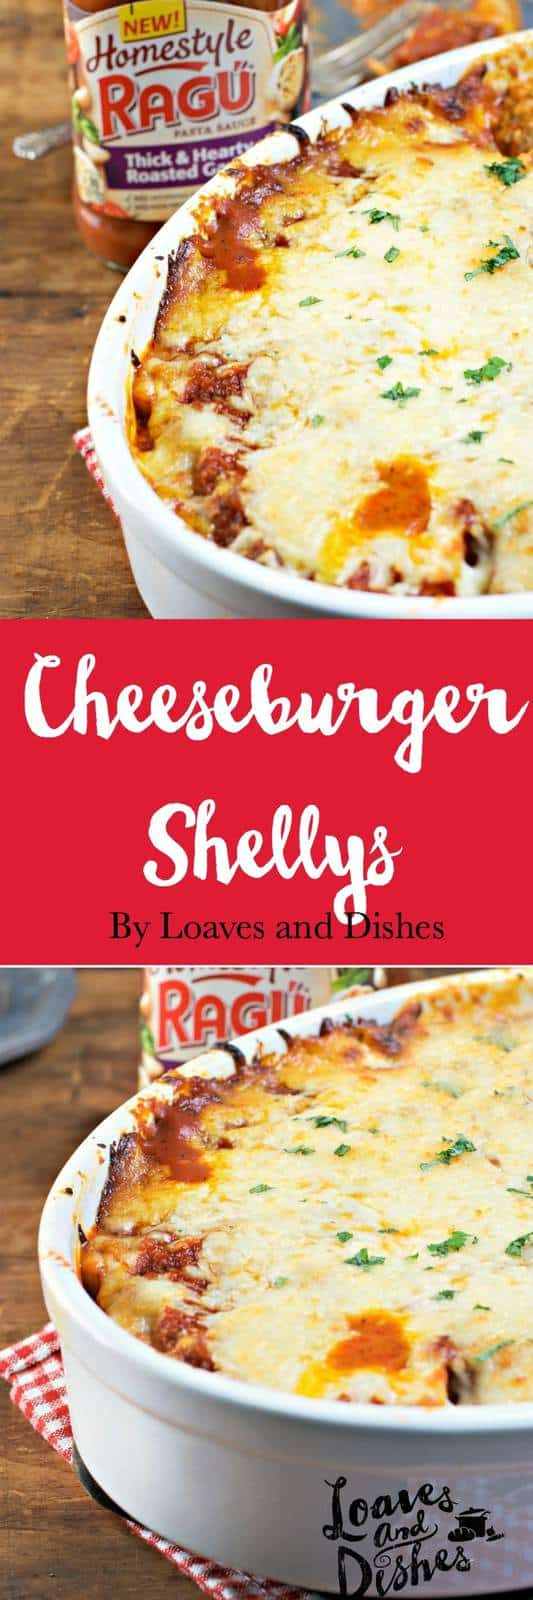 Cheeseburger Shellys are EASY, SUPER TASTY and READY for the oven in 30 mins. All you will hear is the fork scraping across the plate - because everyone will be chowing down. Stuffed Shells, Cheese Stuffed Shells, Baked Pasta and Cheese. EASY!